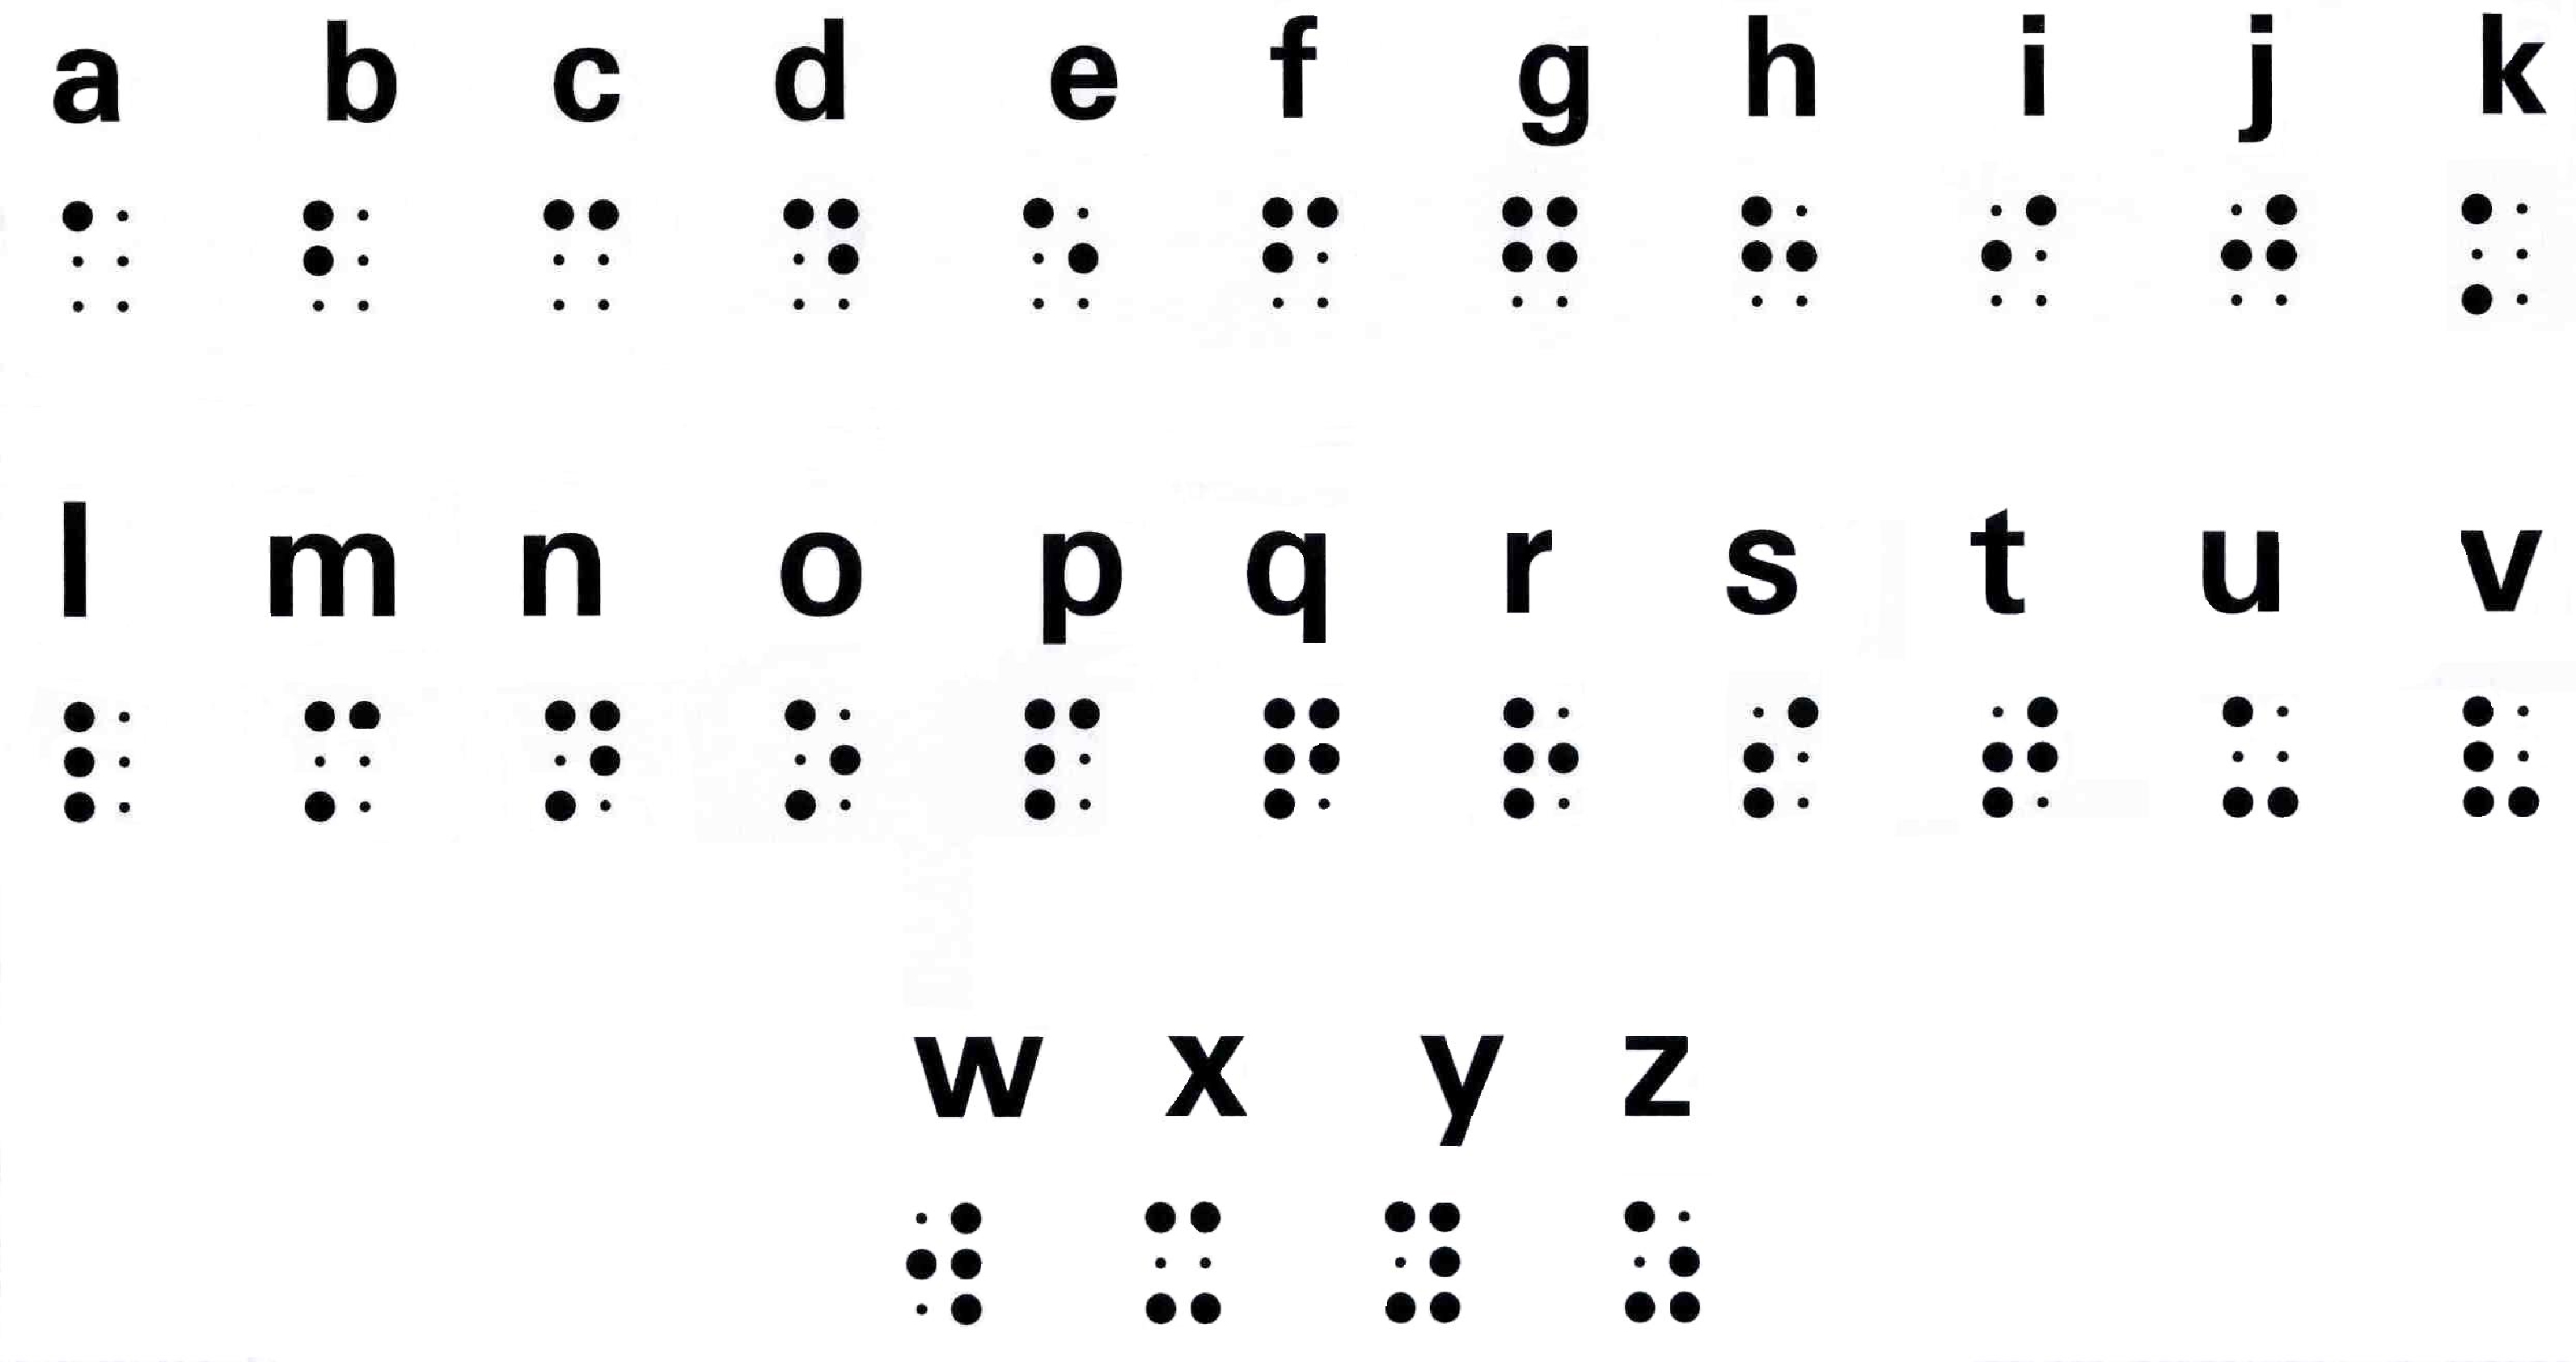 Braille image